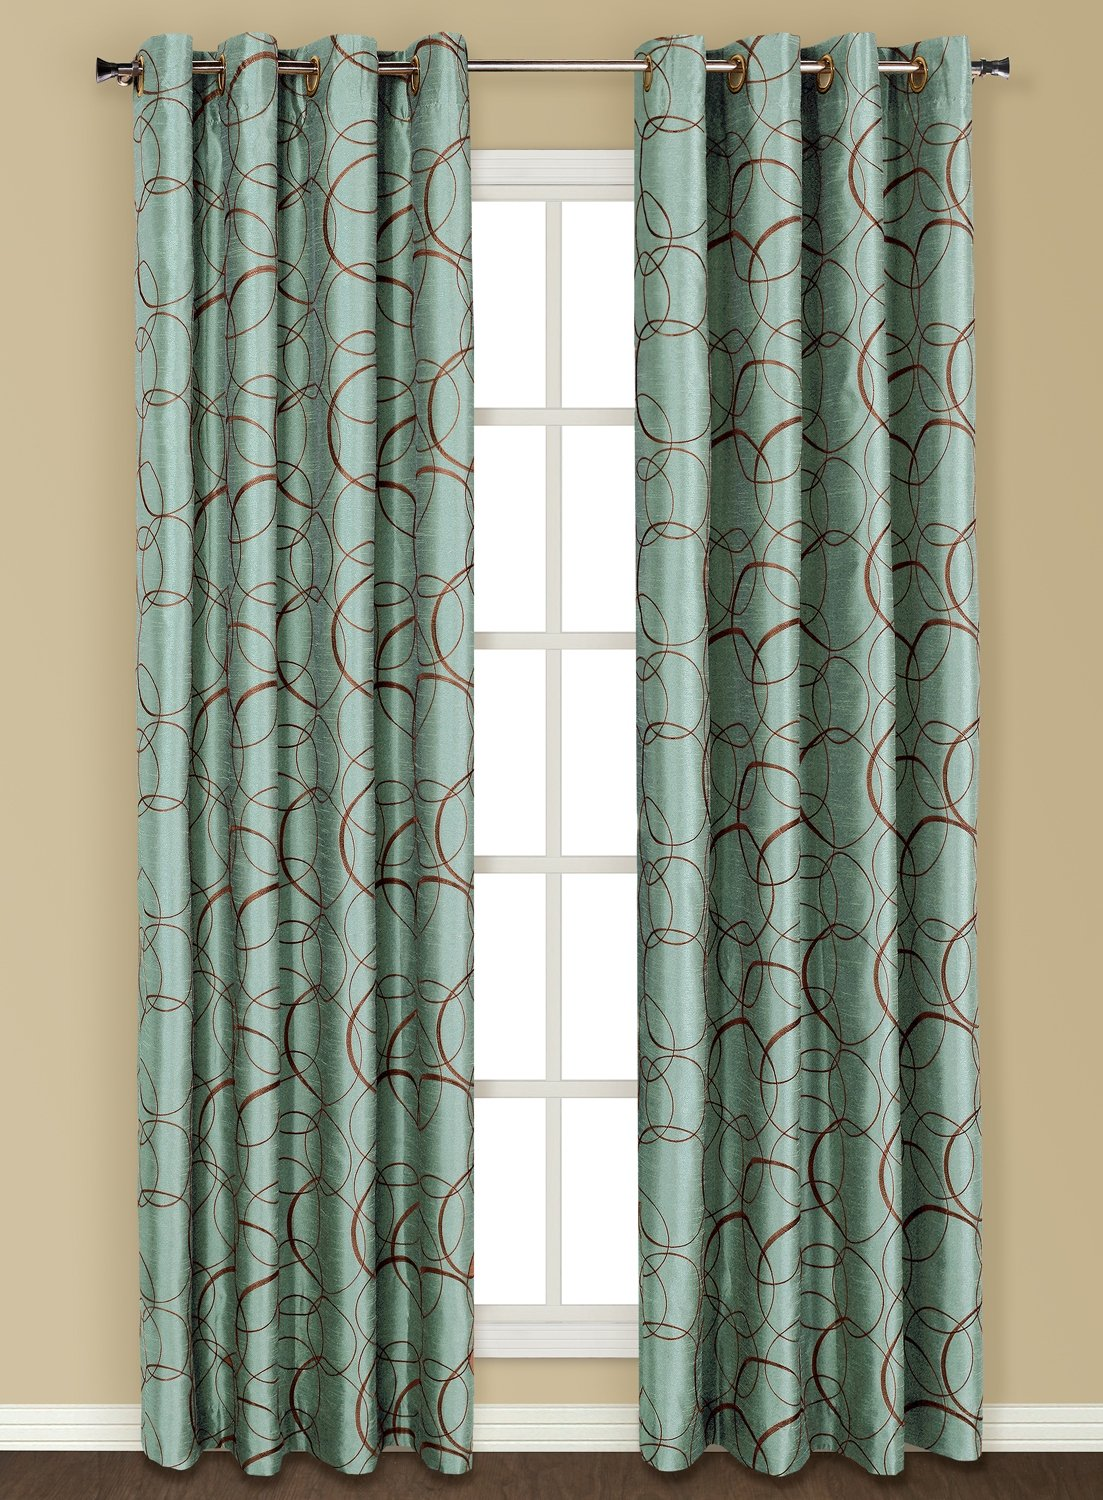 United Curtain Sinclair Embroidered Window Curtain Panel, 54 by 84-Inch, Blue